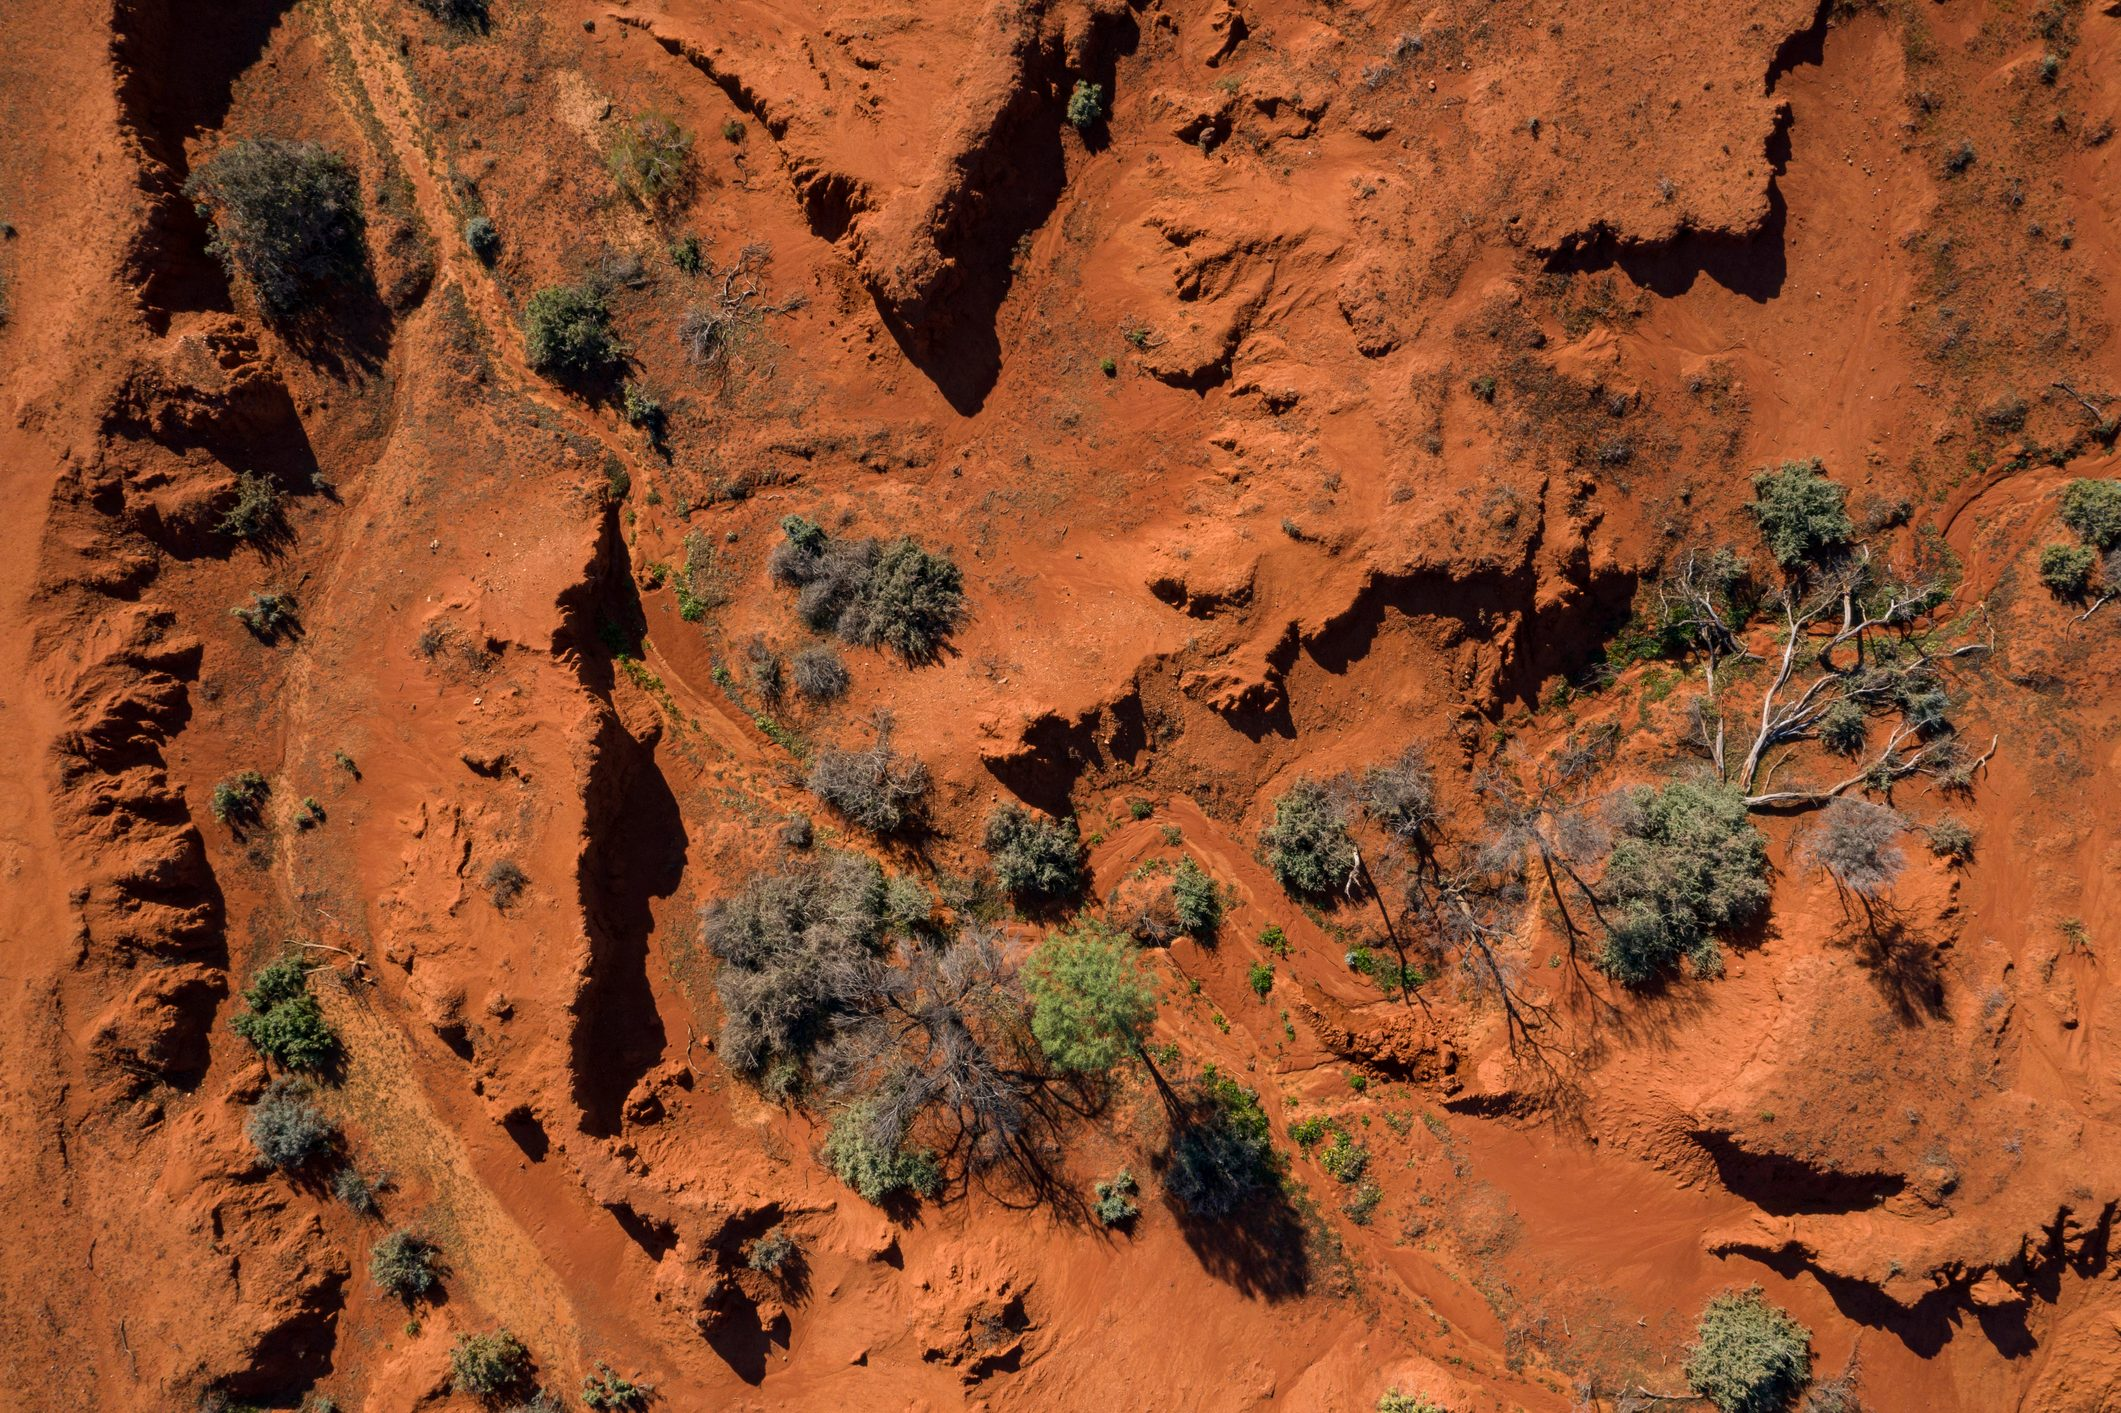 Drone point of view over the red earth of the Australian Outback